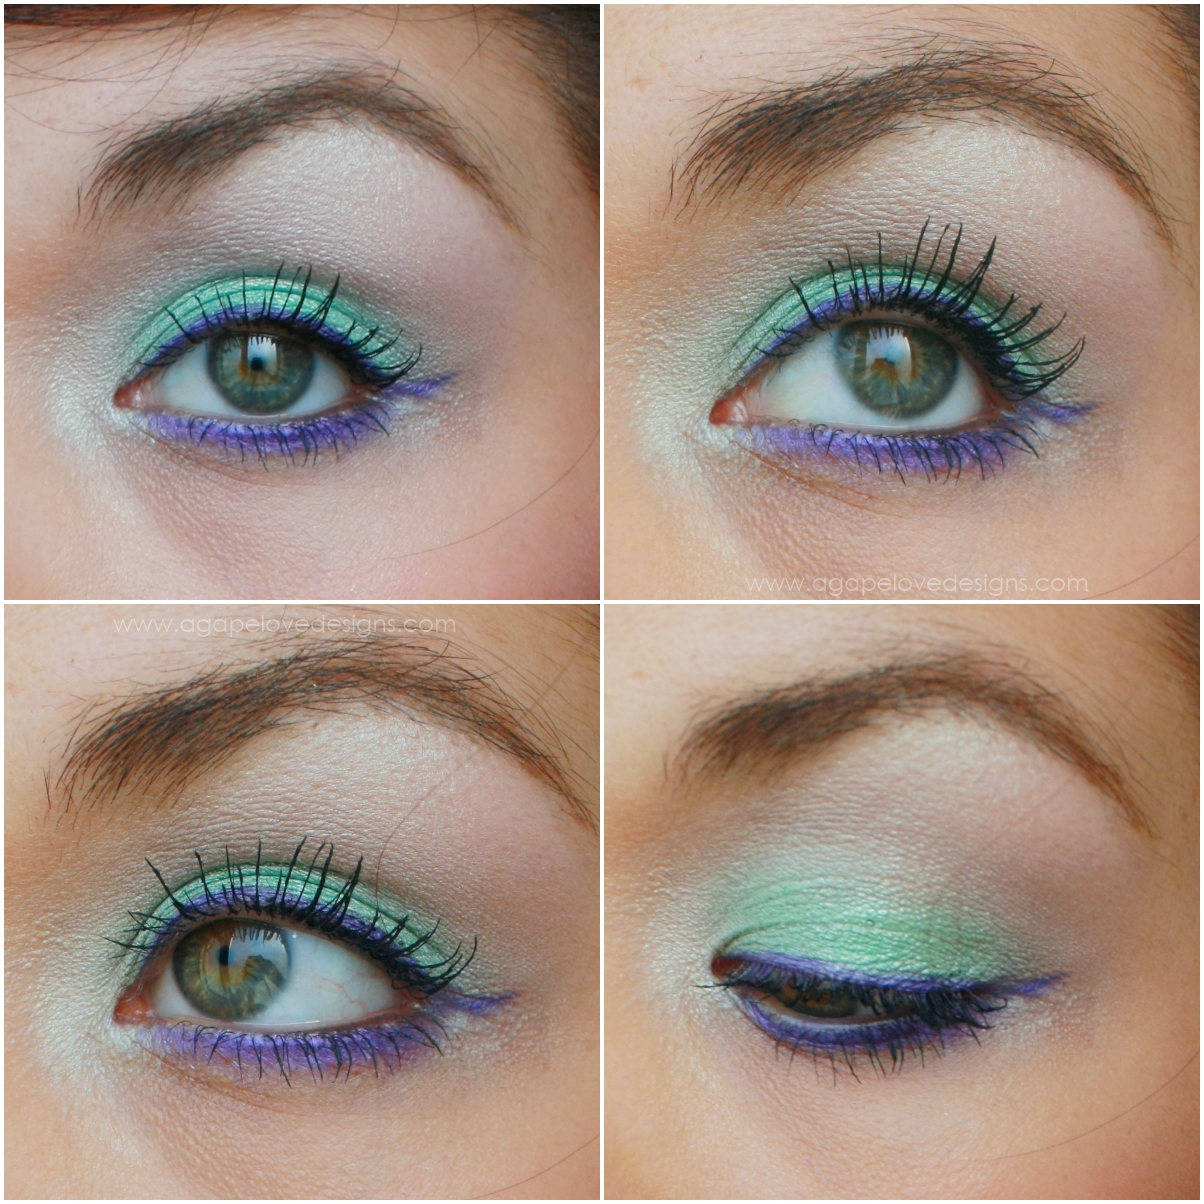 Agape Love Designs: The Little Mermaid, Ariel, Inspired Makeup